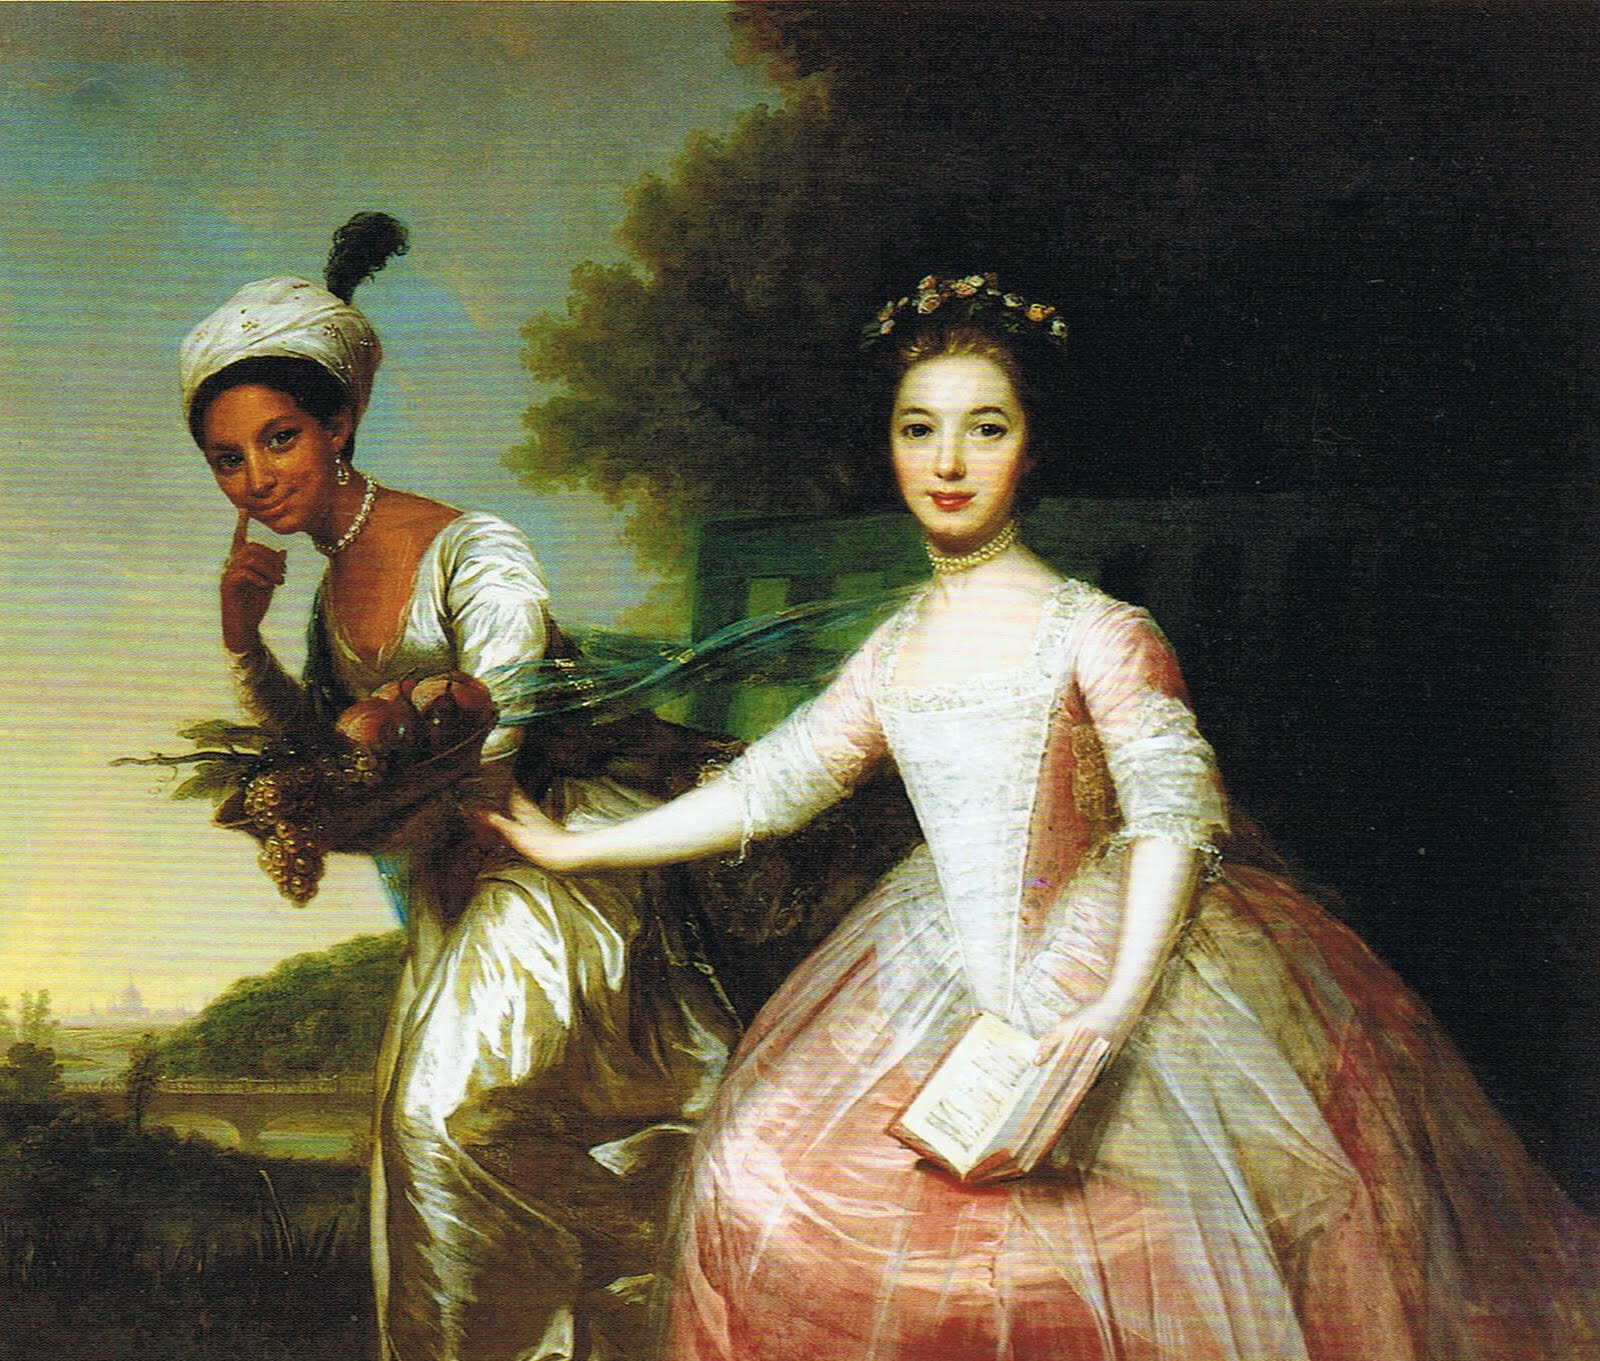 Painting attributed to Hohann Zoffany of Dido Belle with her cousin Elizabeth